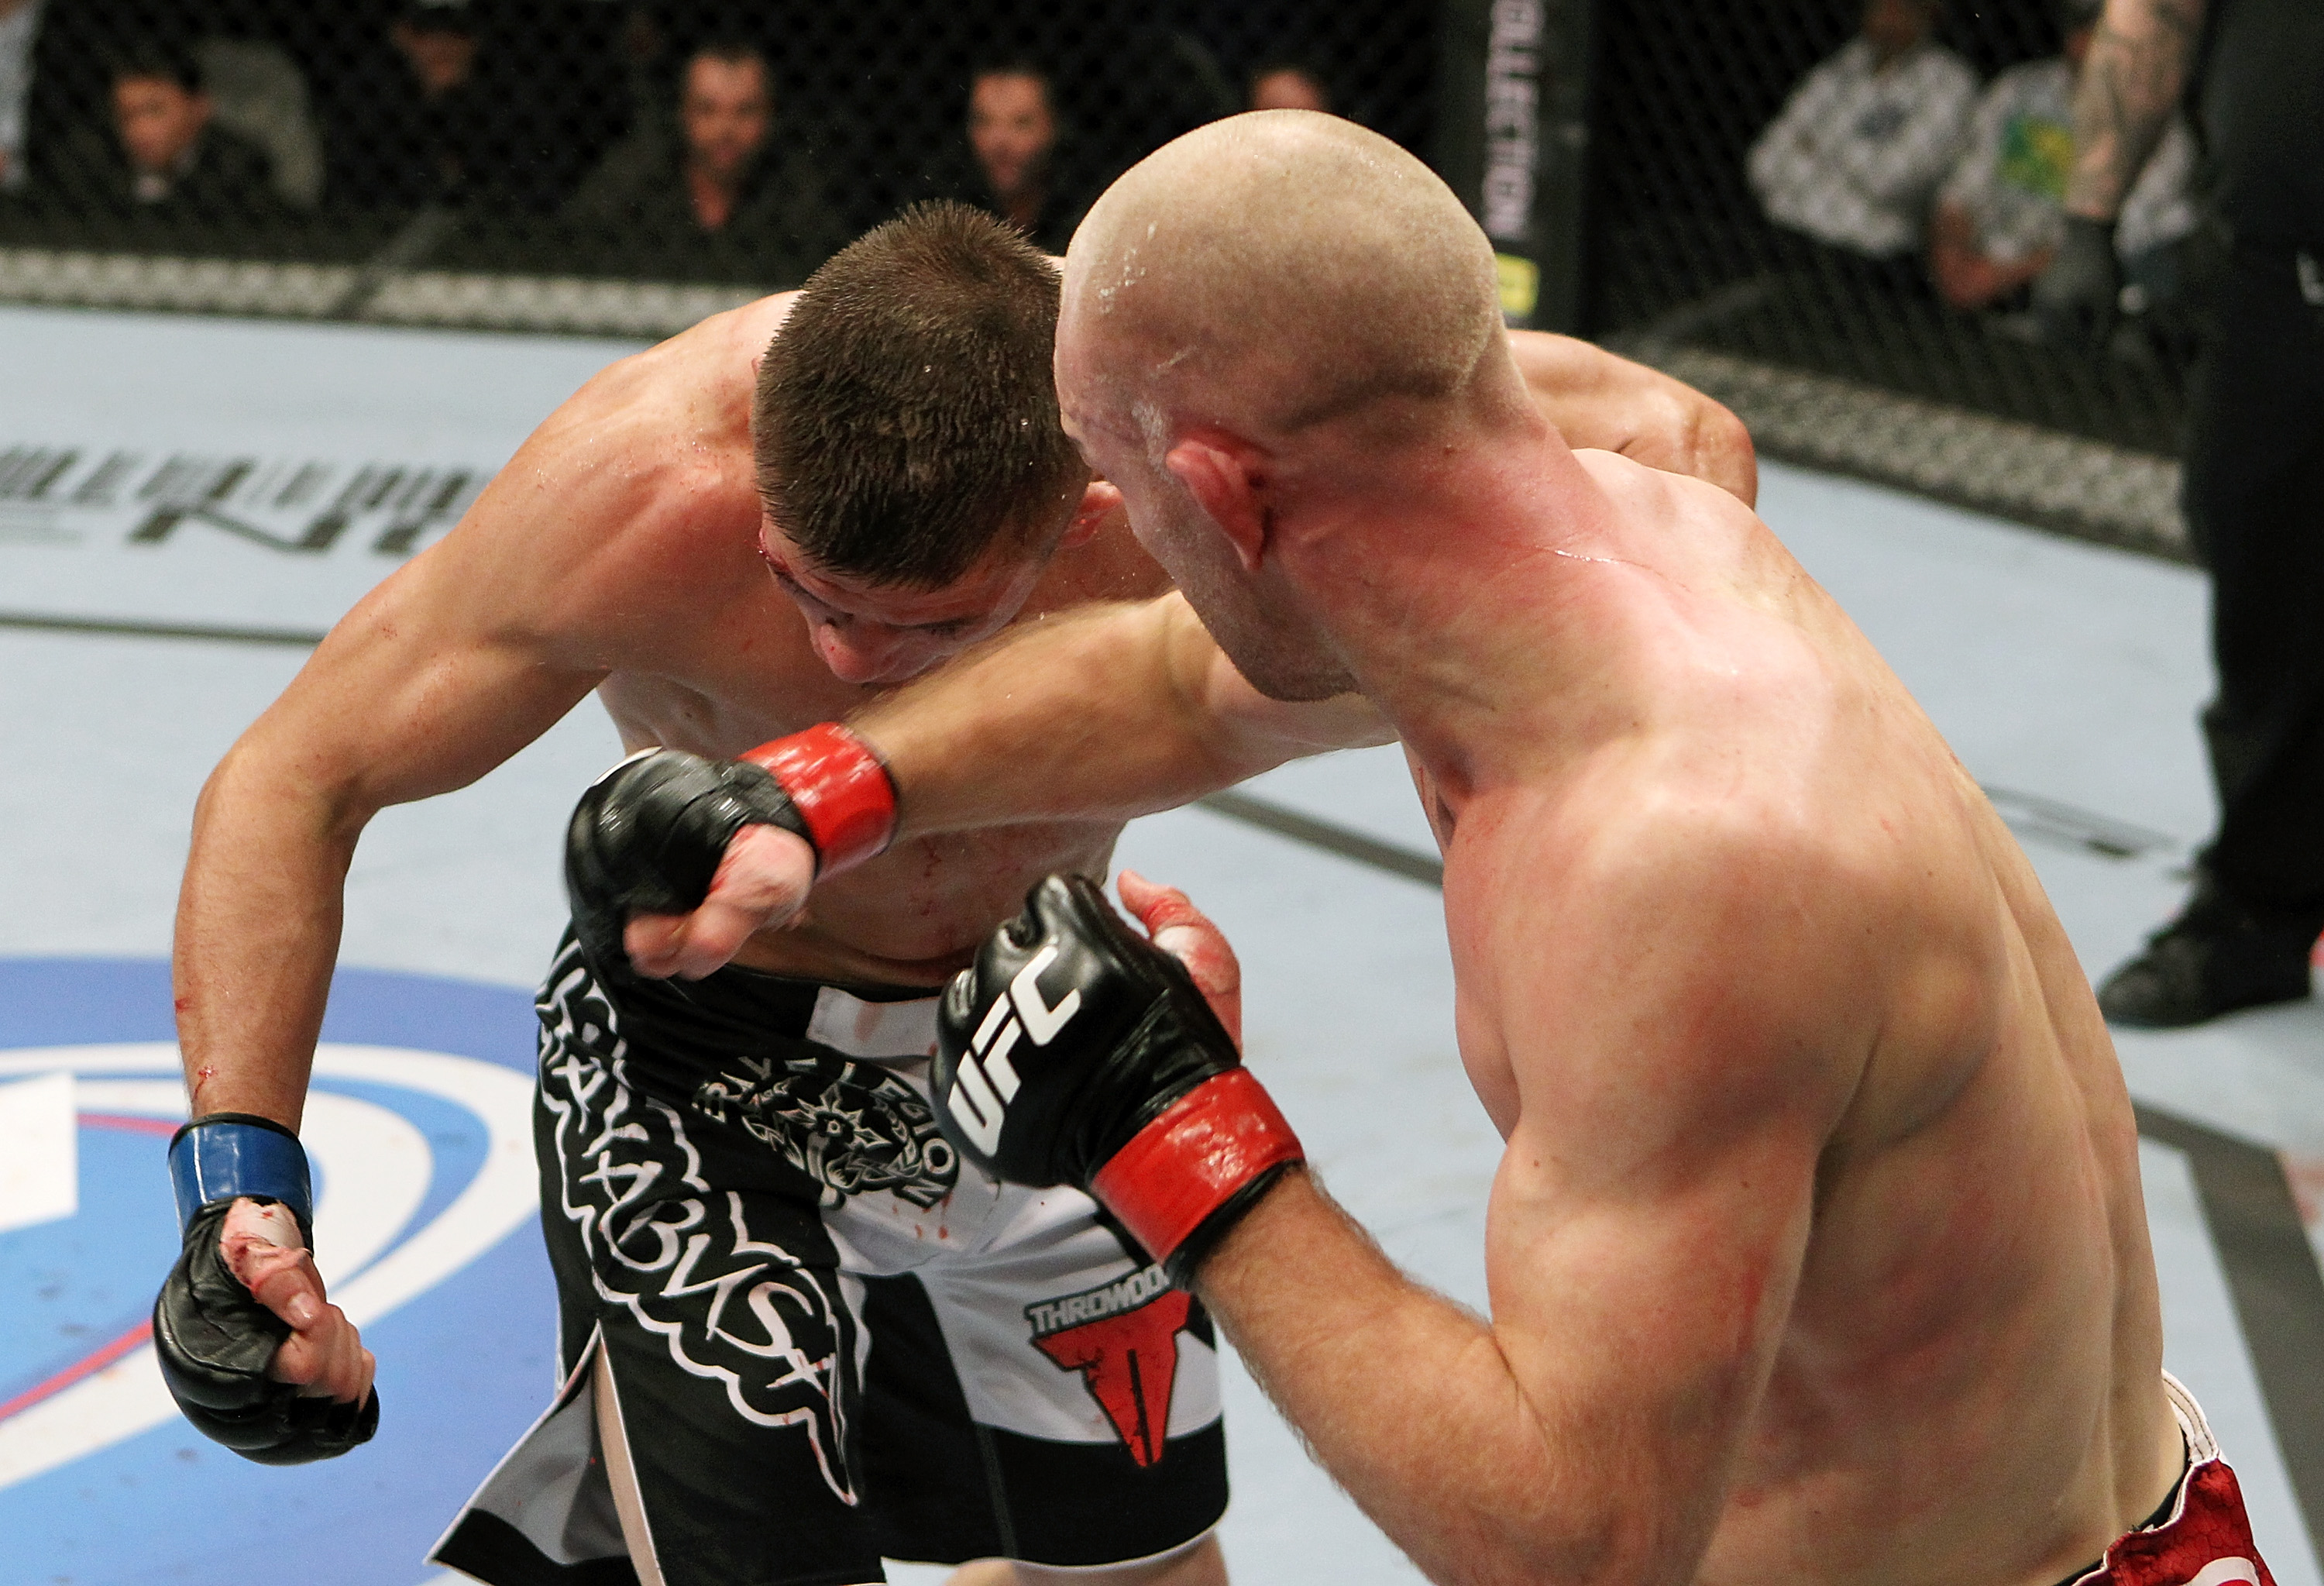 SAN JOSE, CA - NOVEMBER 19:  (R-L) Martin Kampmann punches Rick Story during an UFC Welterweight bout at the HP Pavillion on November 19, 2011 in San Jose, California.  (Photo by Josh Hedges/Zuffa LLC/Zuffa LLC via Getty Images)